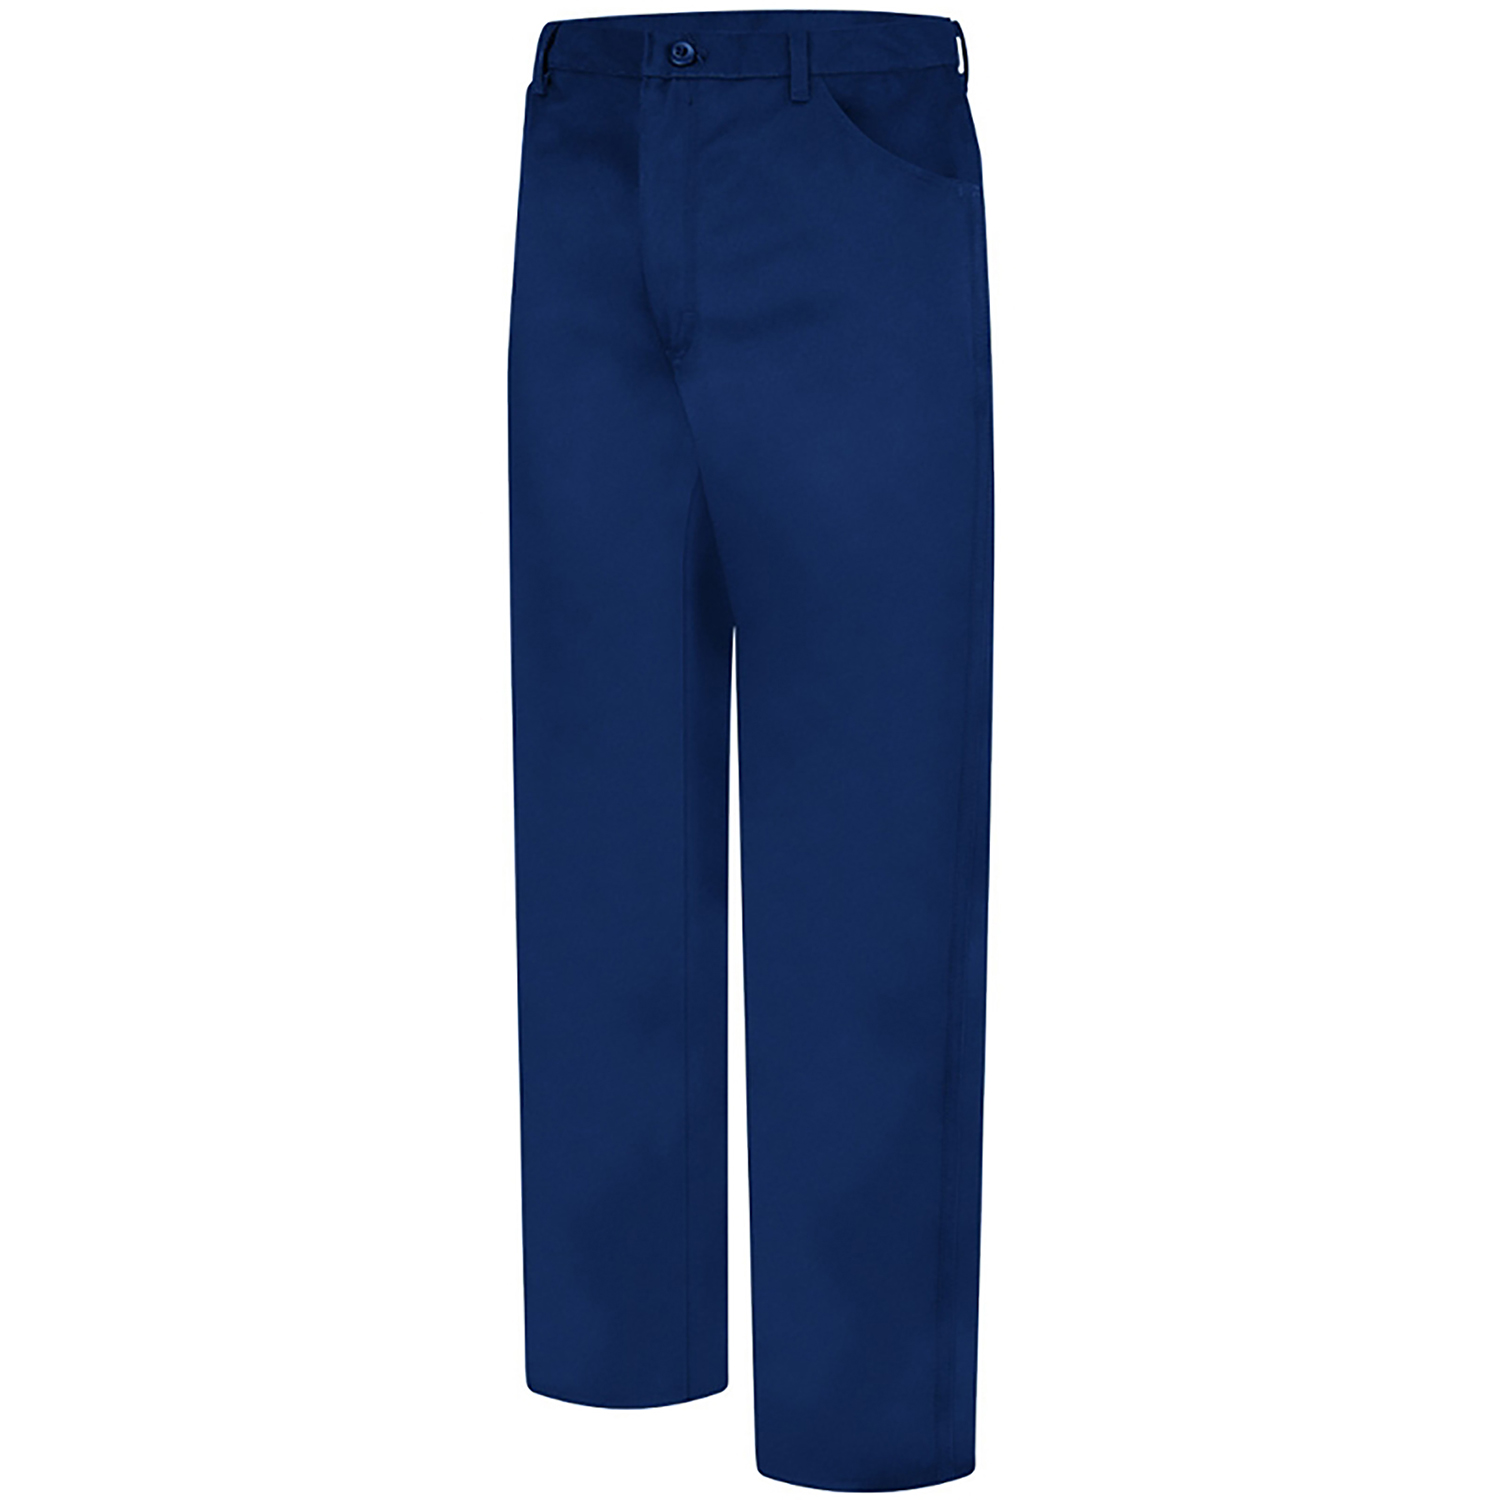 Bulwark Flame Resistant Jean Style Pant Navy Blue